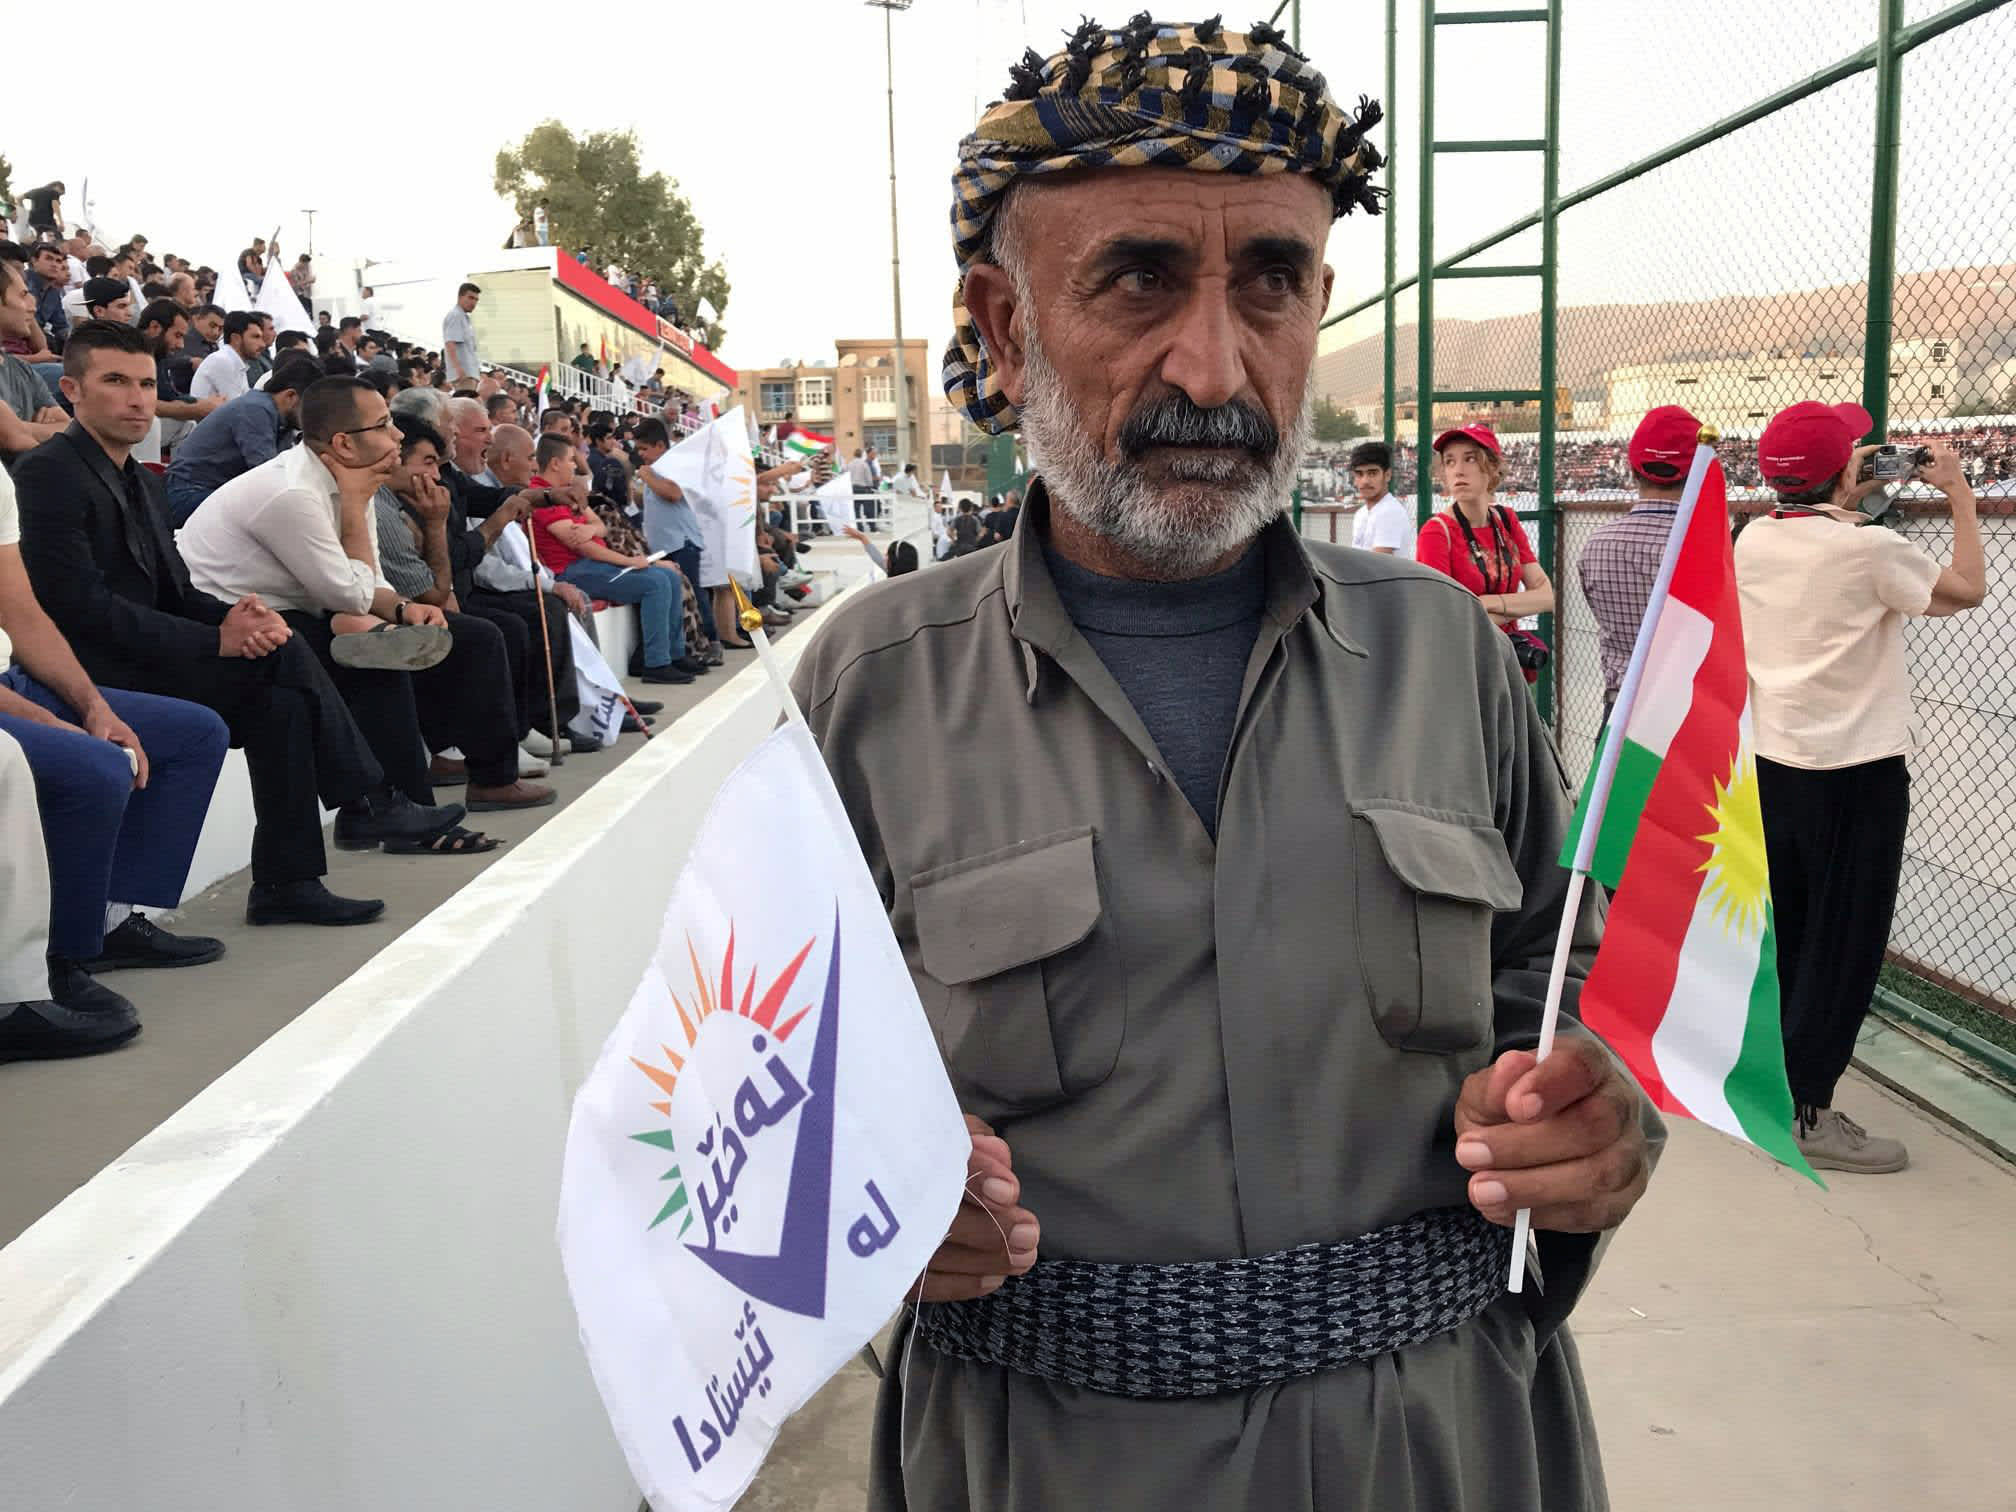 """A supporter of the """"NO For Now"""" movement attends a rally calling on Iraqi Kurds to vote against the referendum, in Sulaimaniyah, Iraq  REUTERS/RAYA JALABI"""